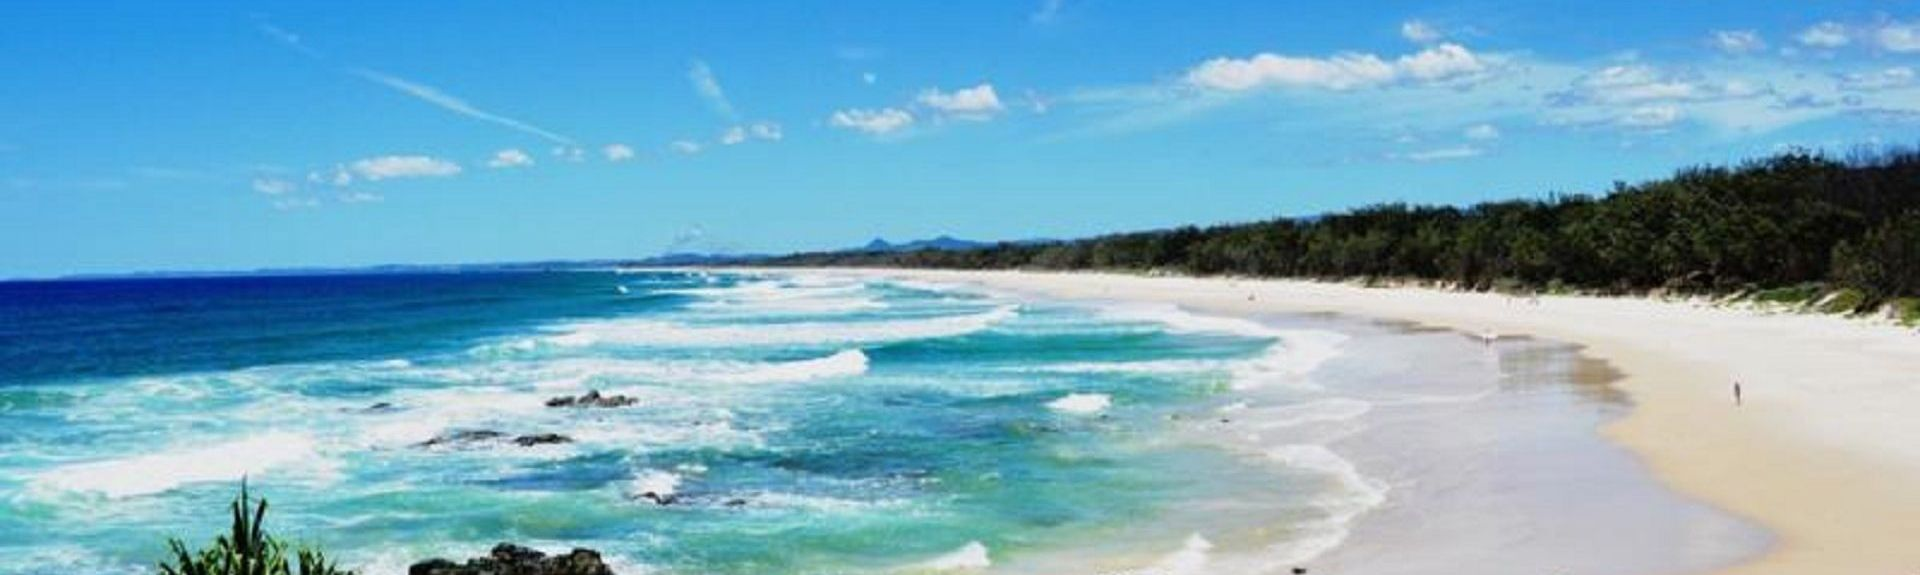 North Kirra Surf Club, Bilinga, Queensland, Australien